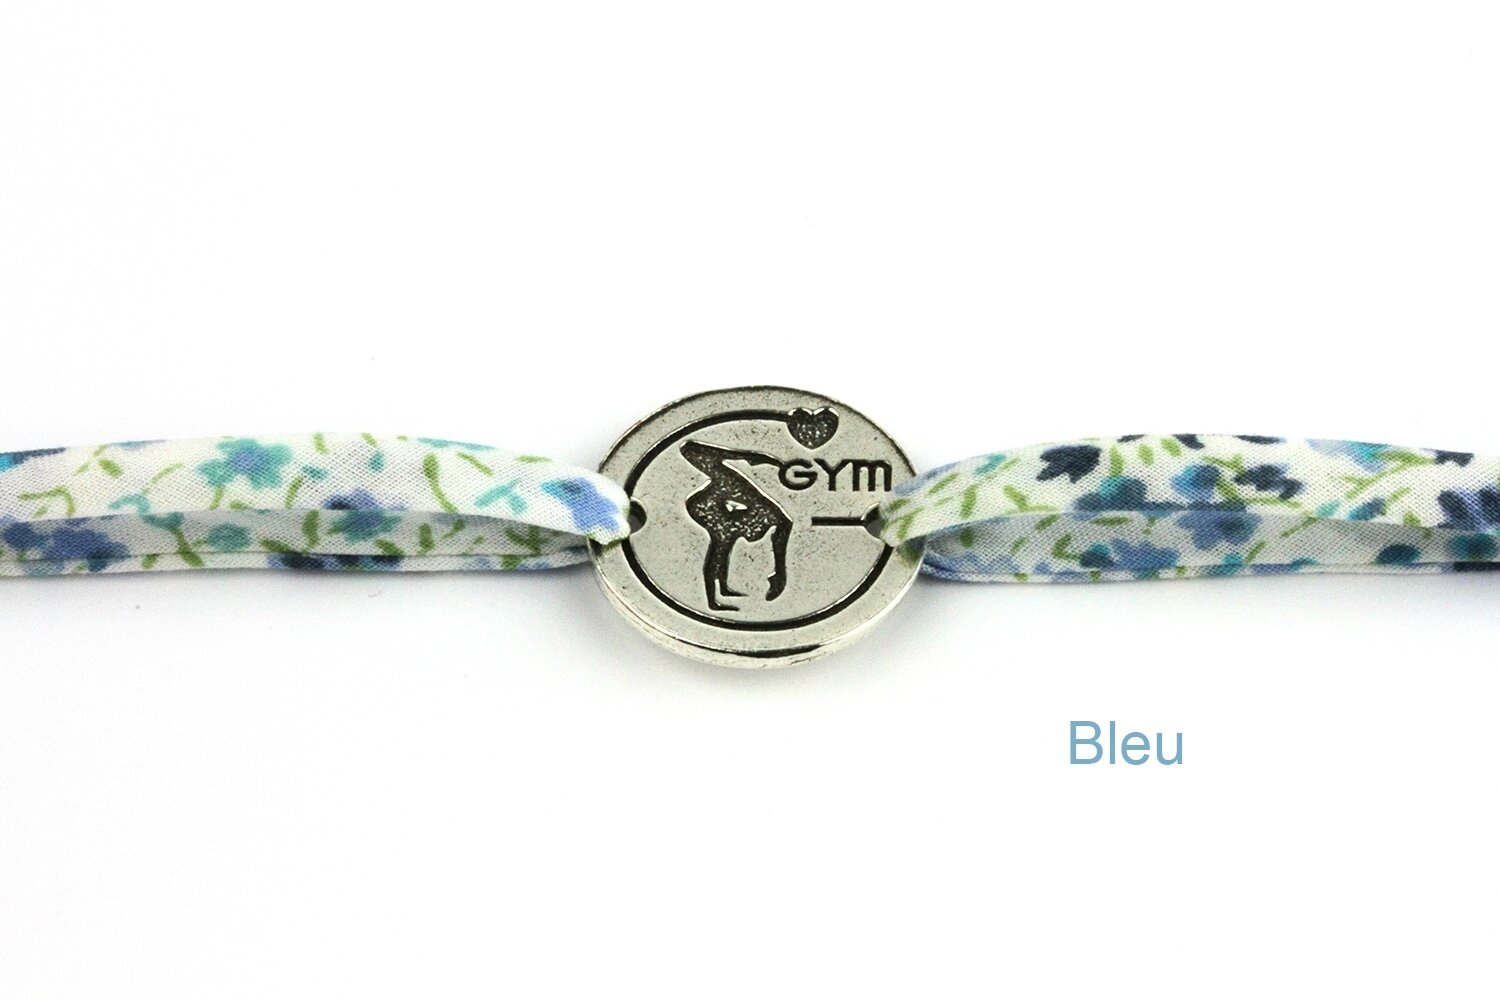 bracelet liberty gym bleu